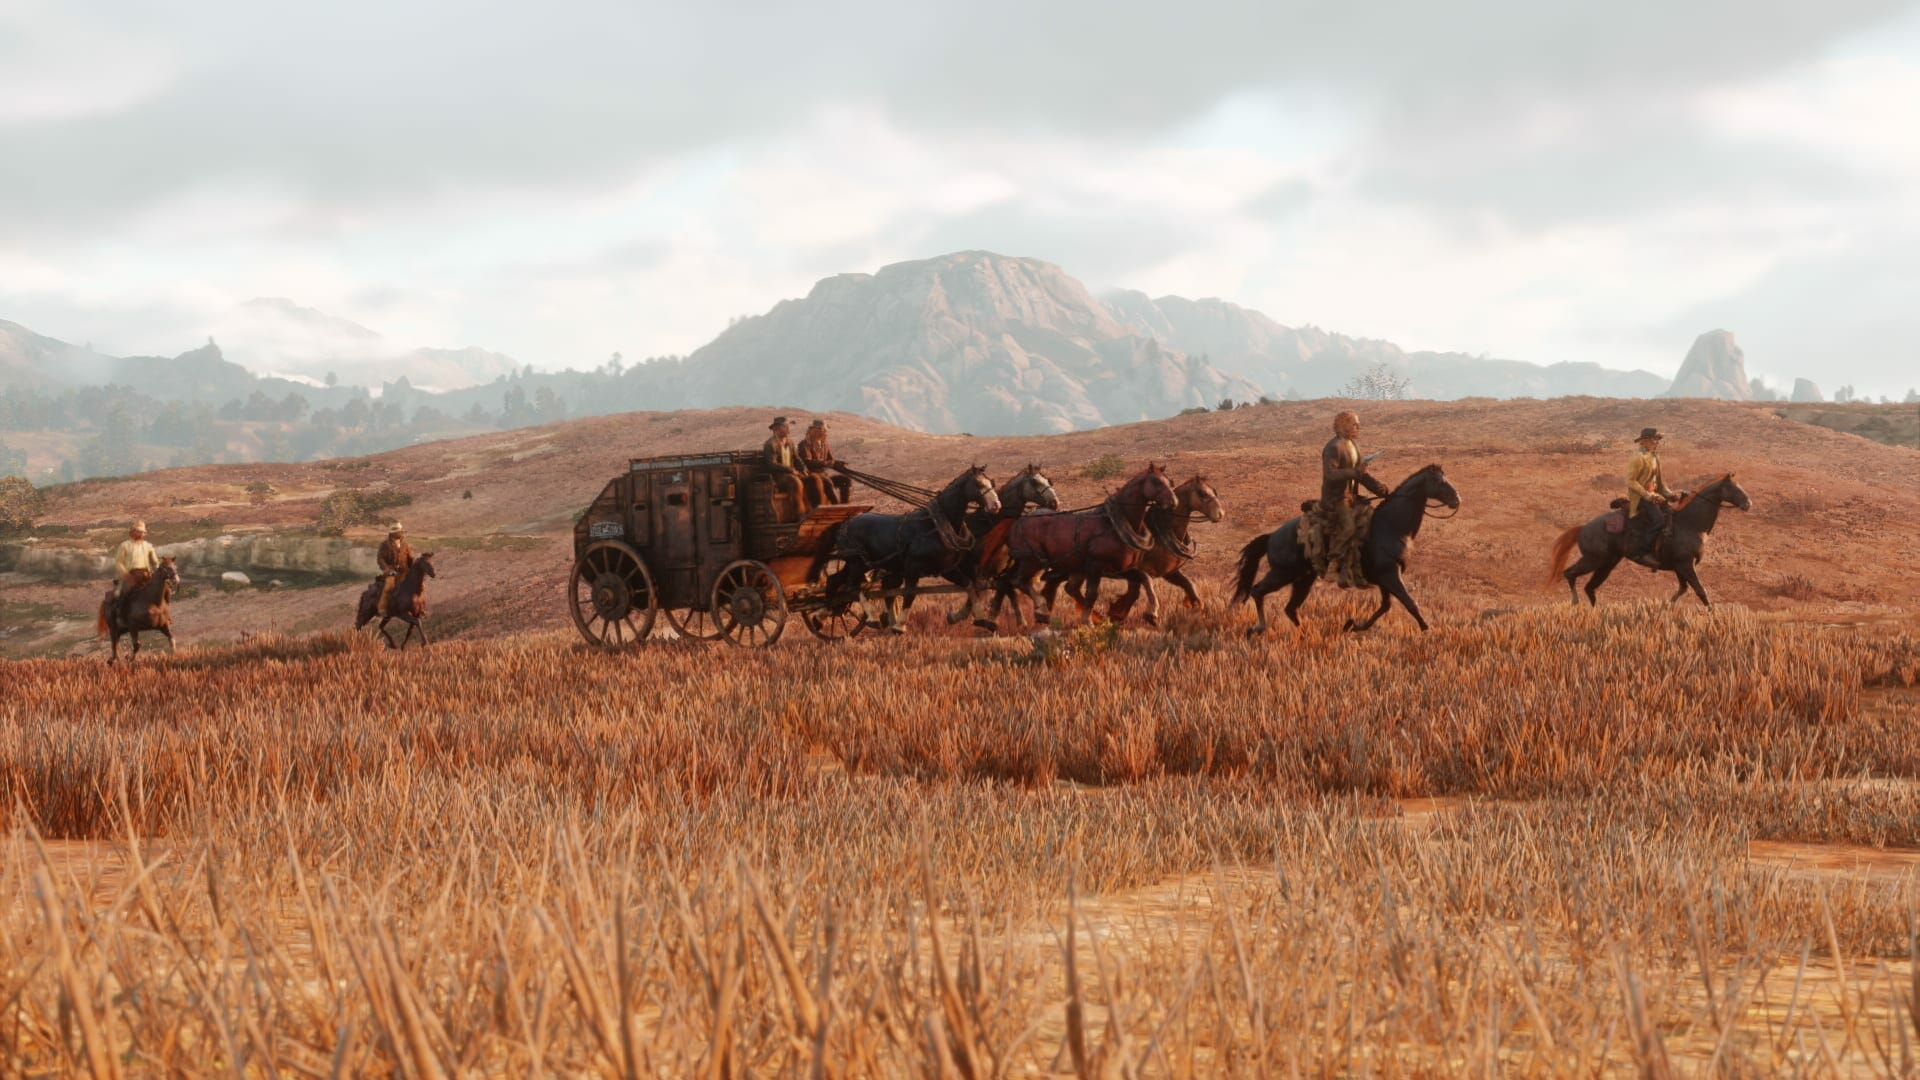 Red Dead Redemption 2 PC Listing Just a Placeholder